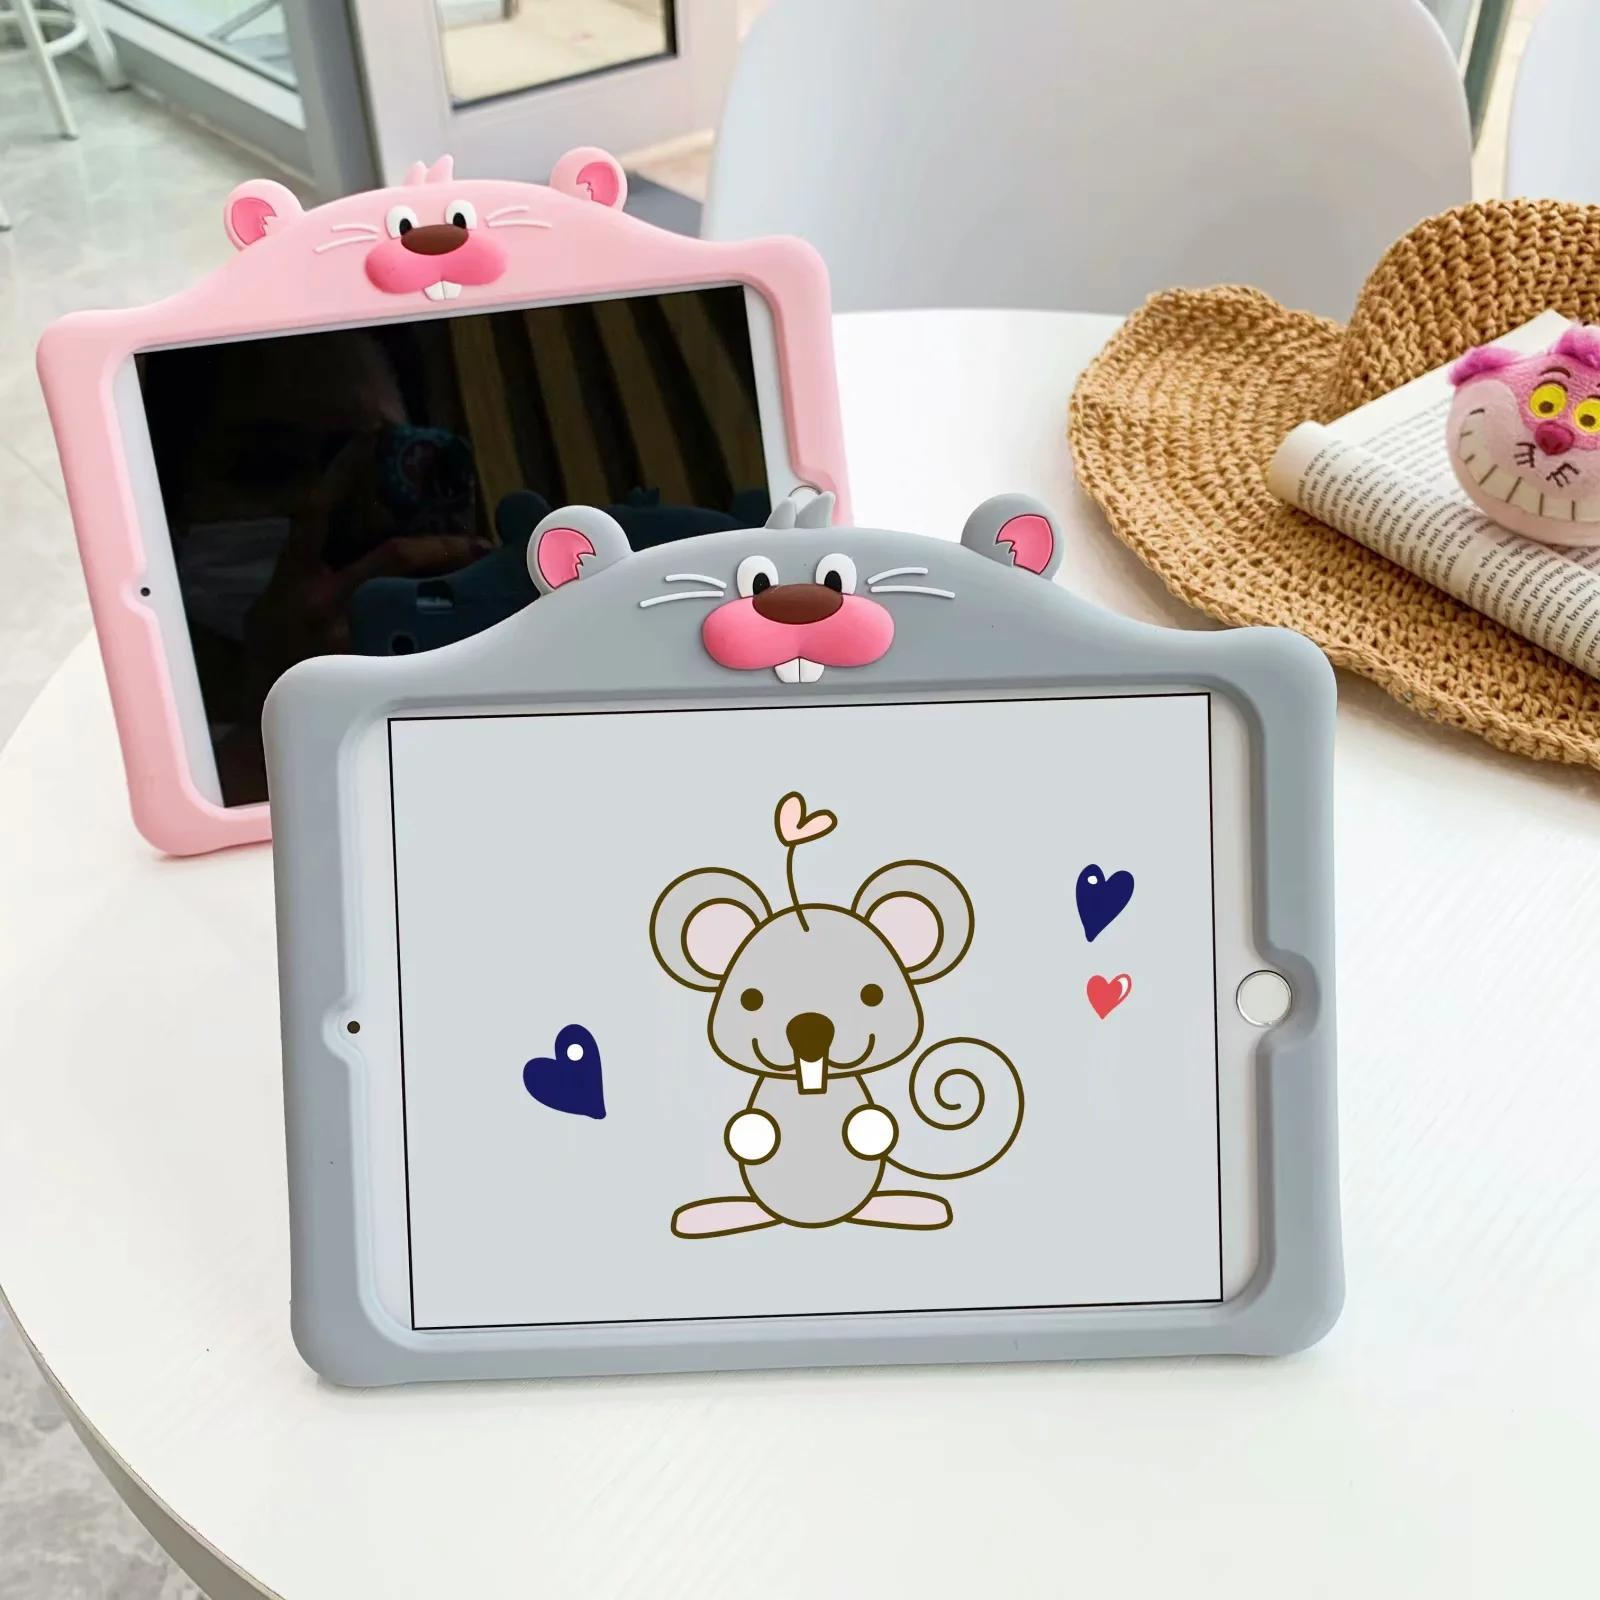 3D Cartoon Mouse Silicon Stand Kids Case For Apple Ipad2 Pro 11 2020 Mini 5 2019 9.7 10.5 Smart Cover Case